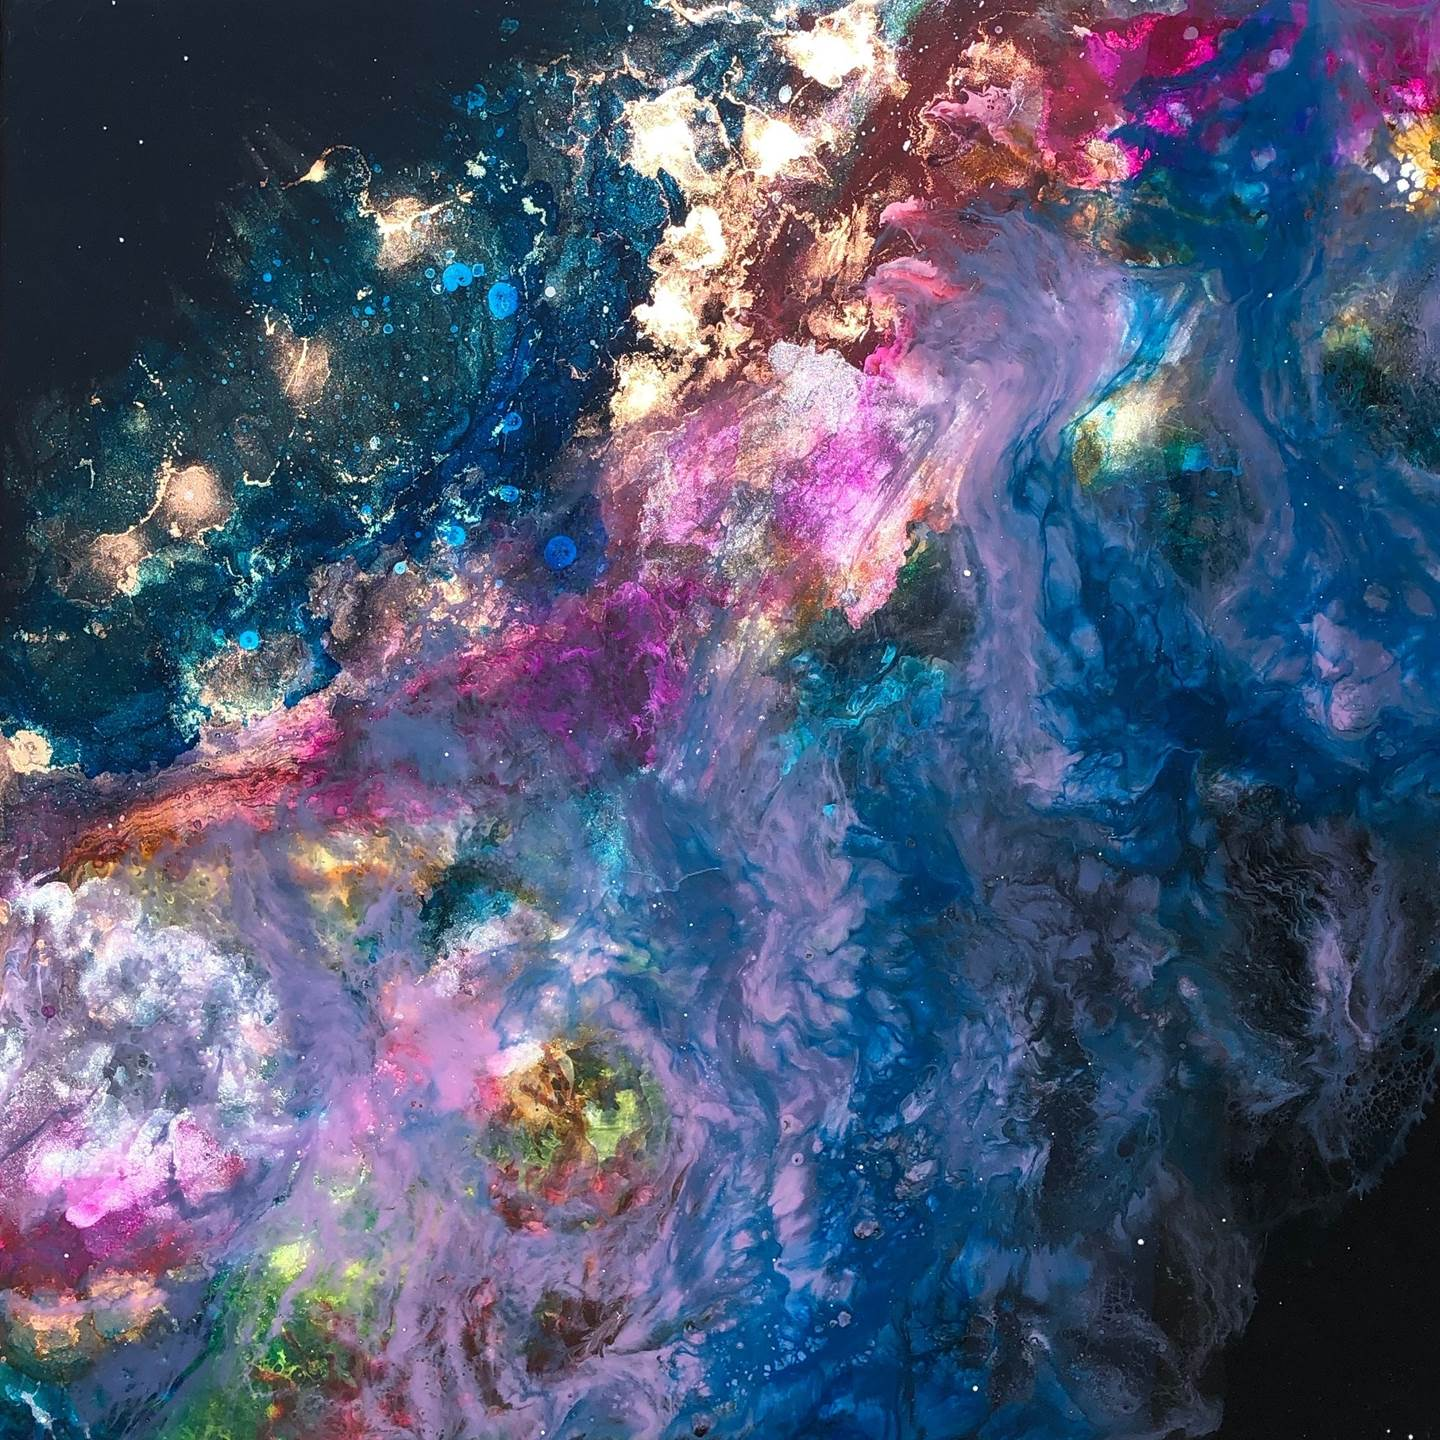 Stellar Promenade, original Abstract Mixed Technique Painting by Tiffani Buteau